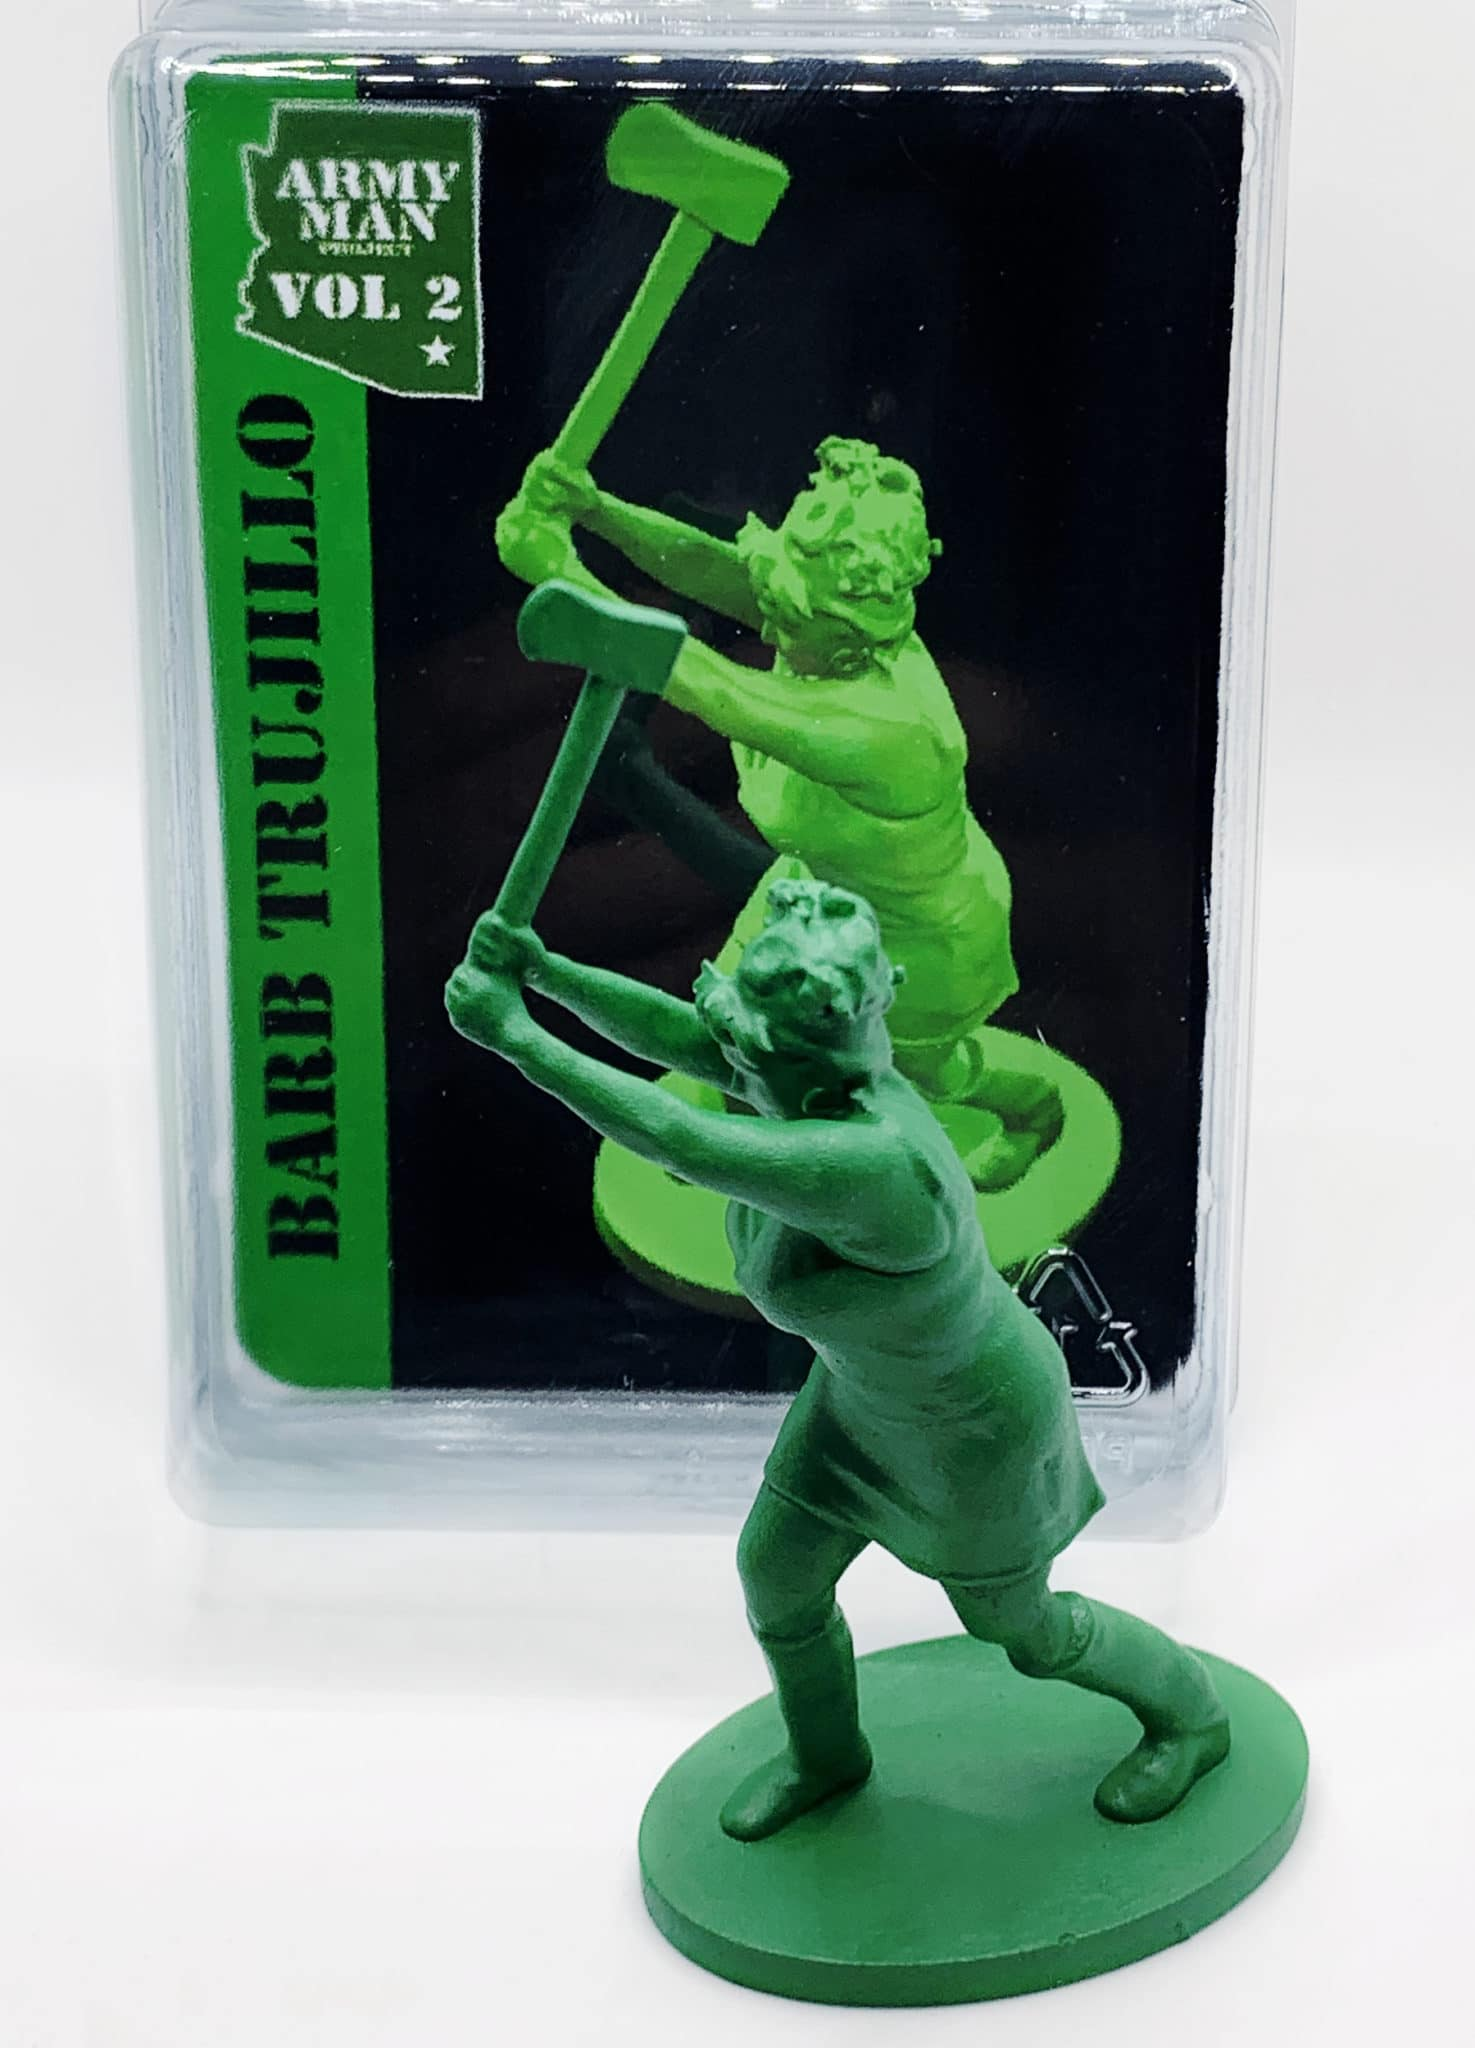 Army Man Project Axe Thrower